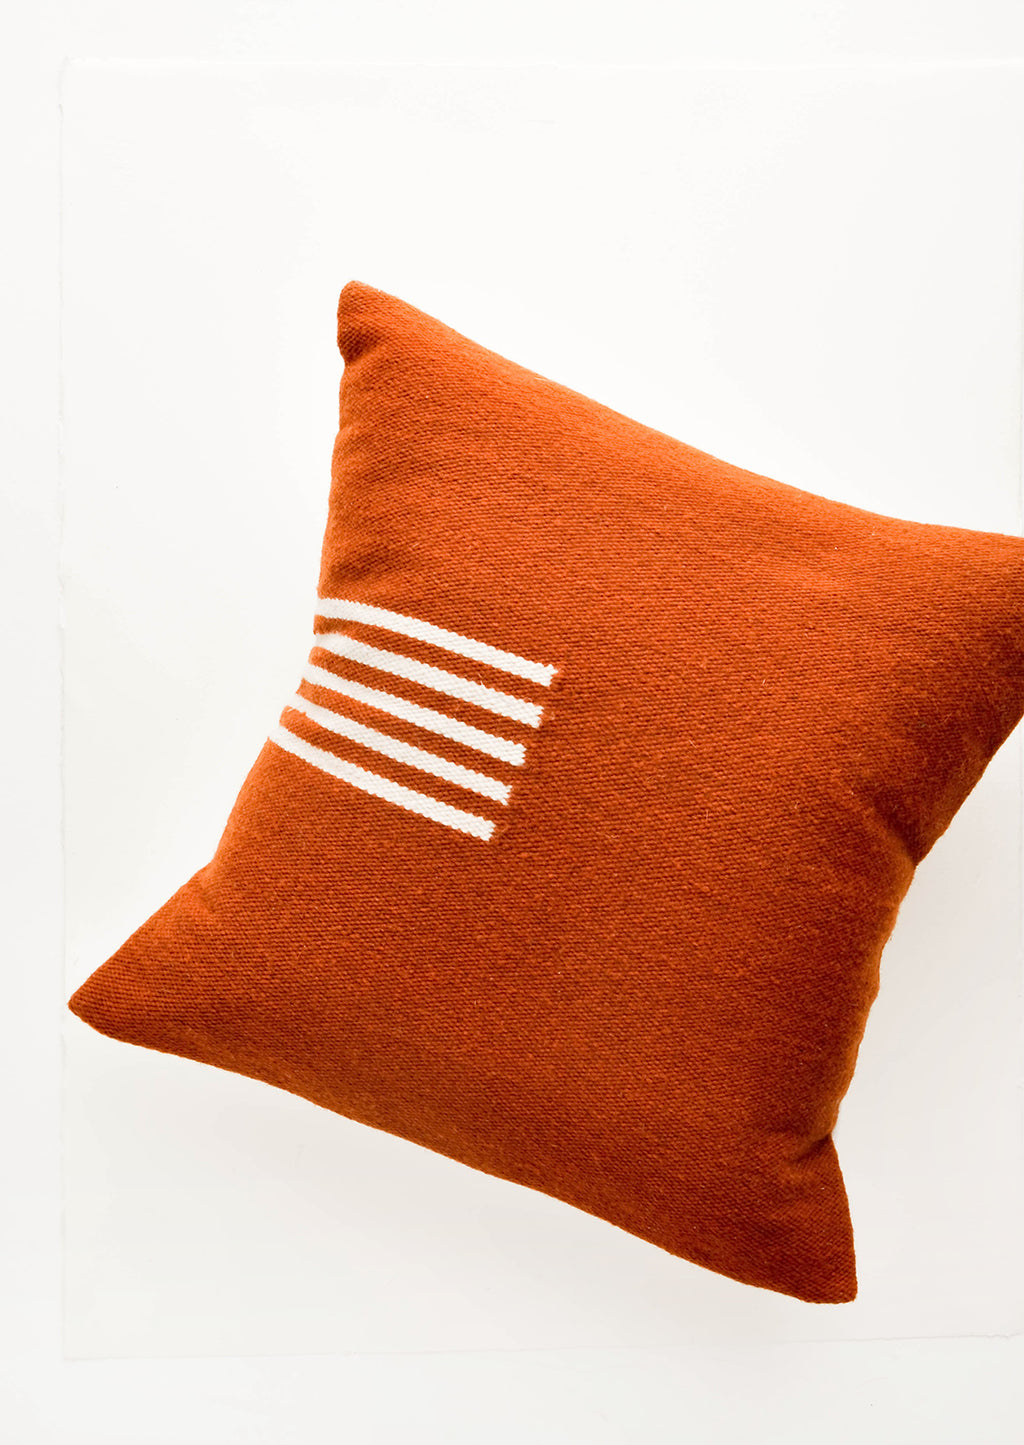 Terracotta / Natural: Terracotta colored, square wool throw pillow with contrasting small stripe detail at side.